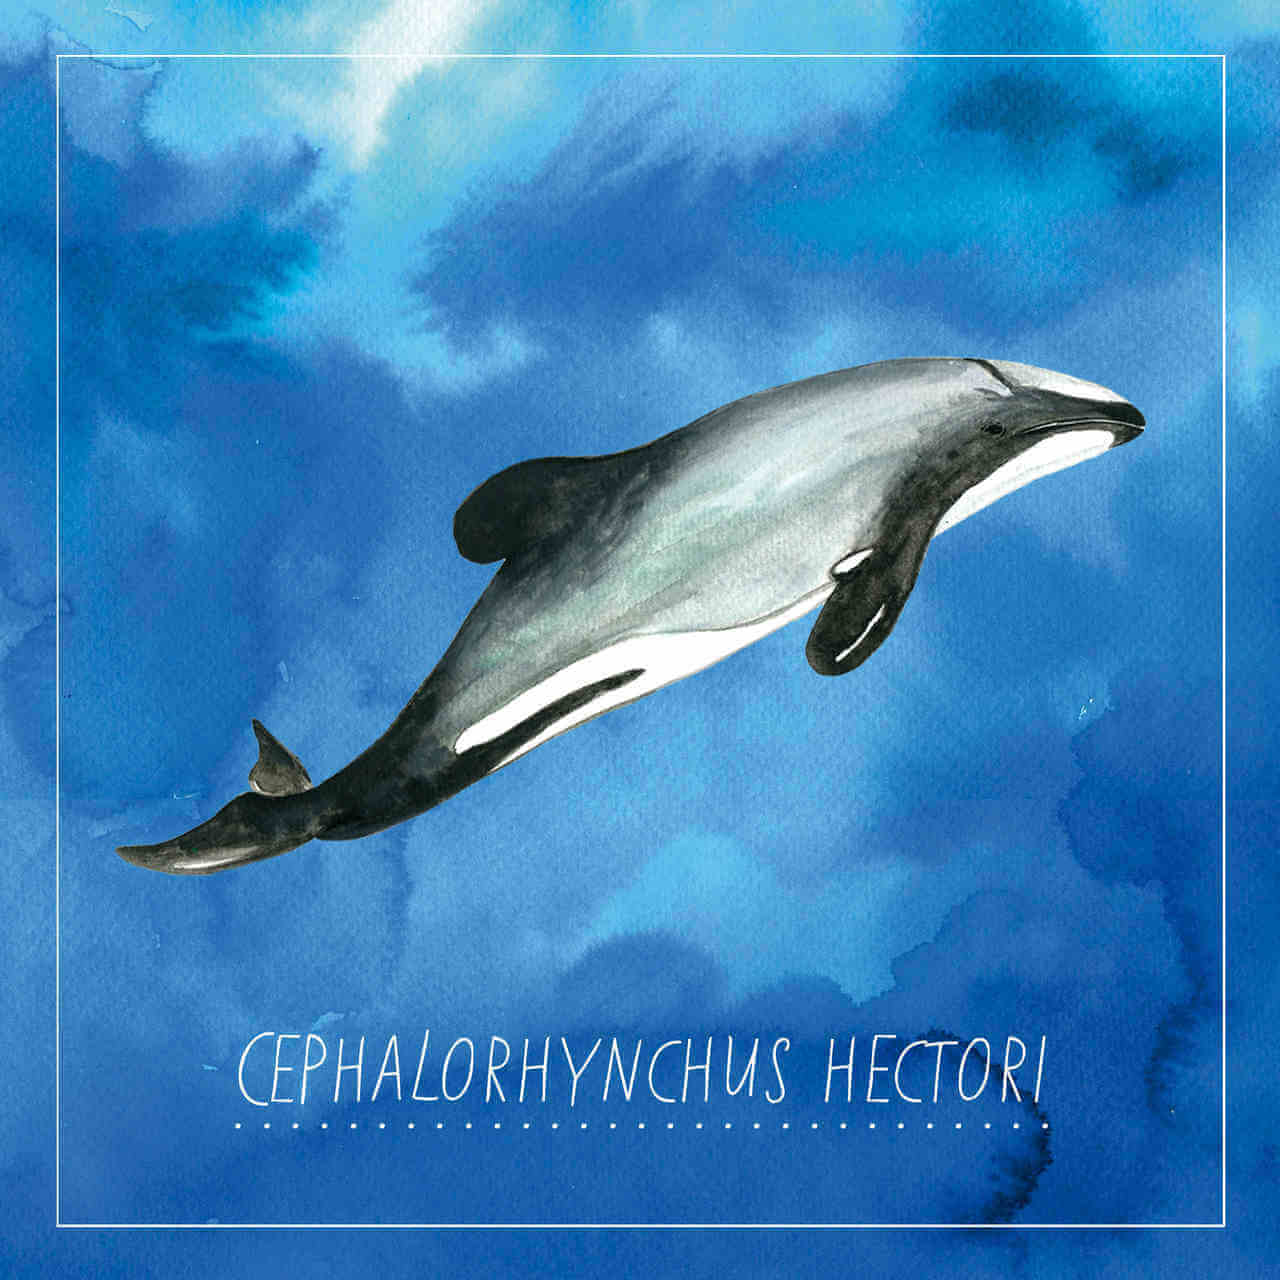 An illustration of a dolphin